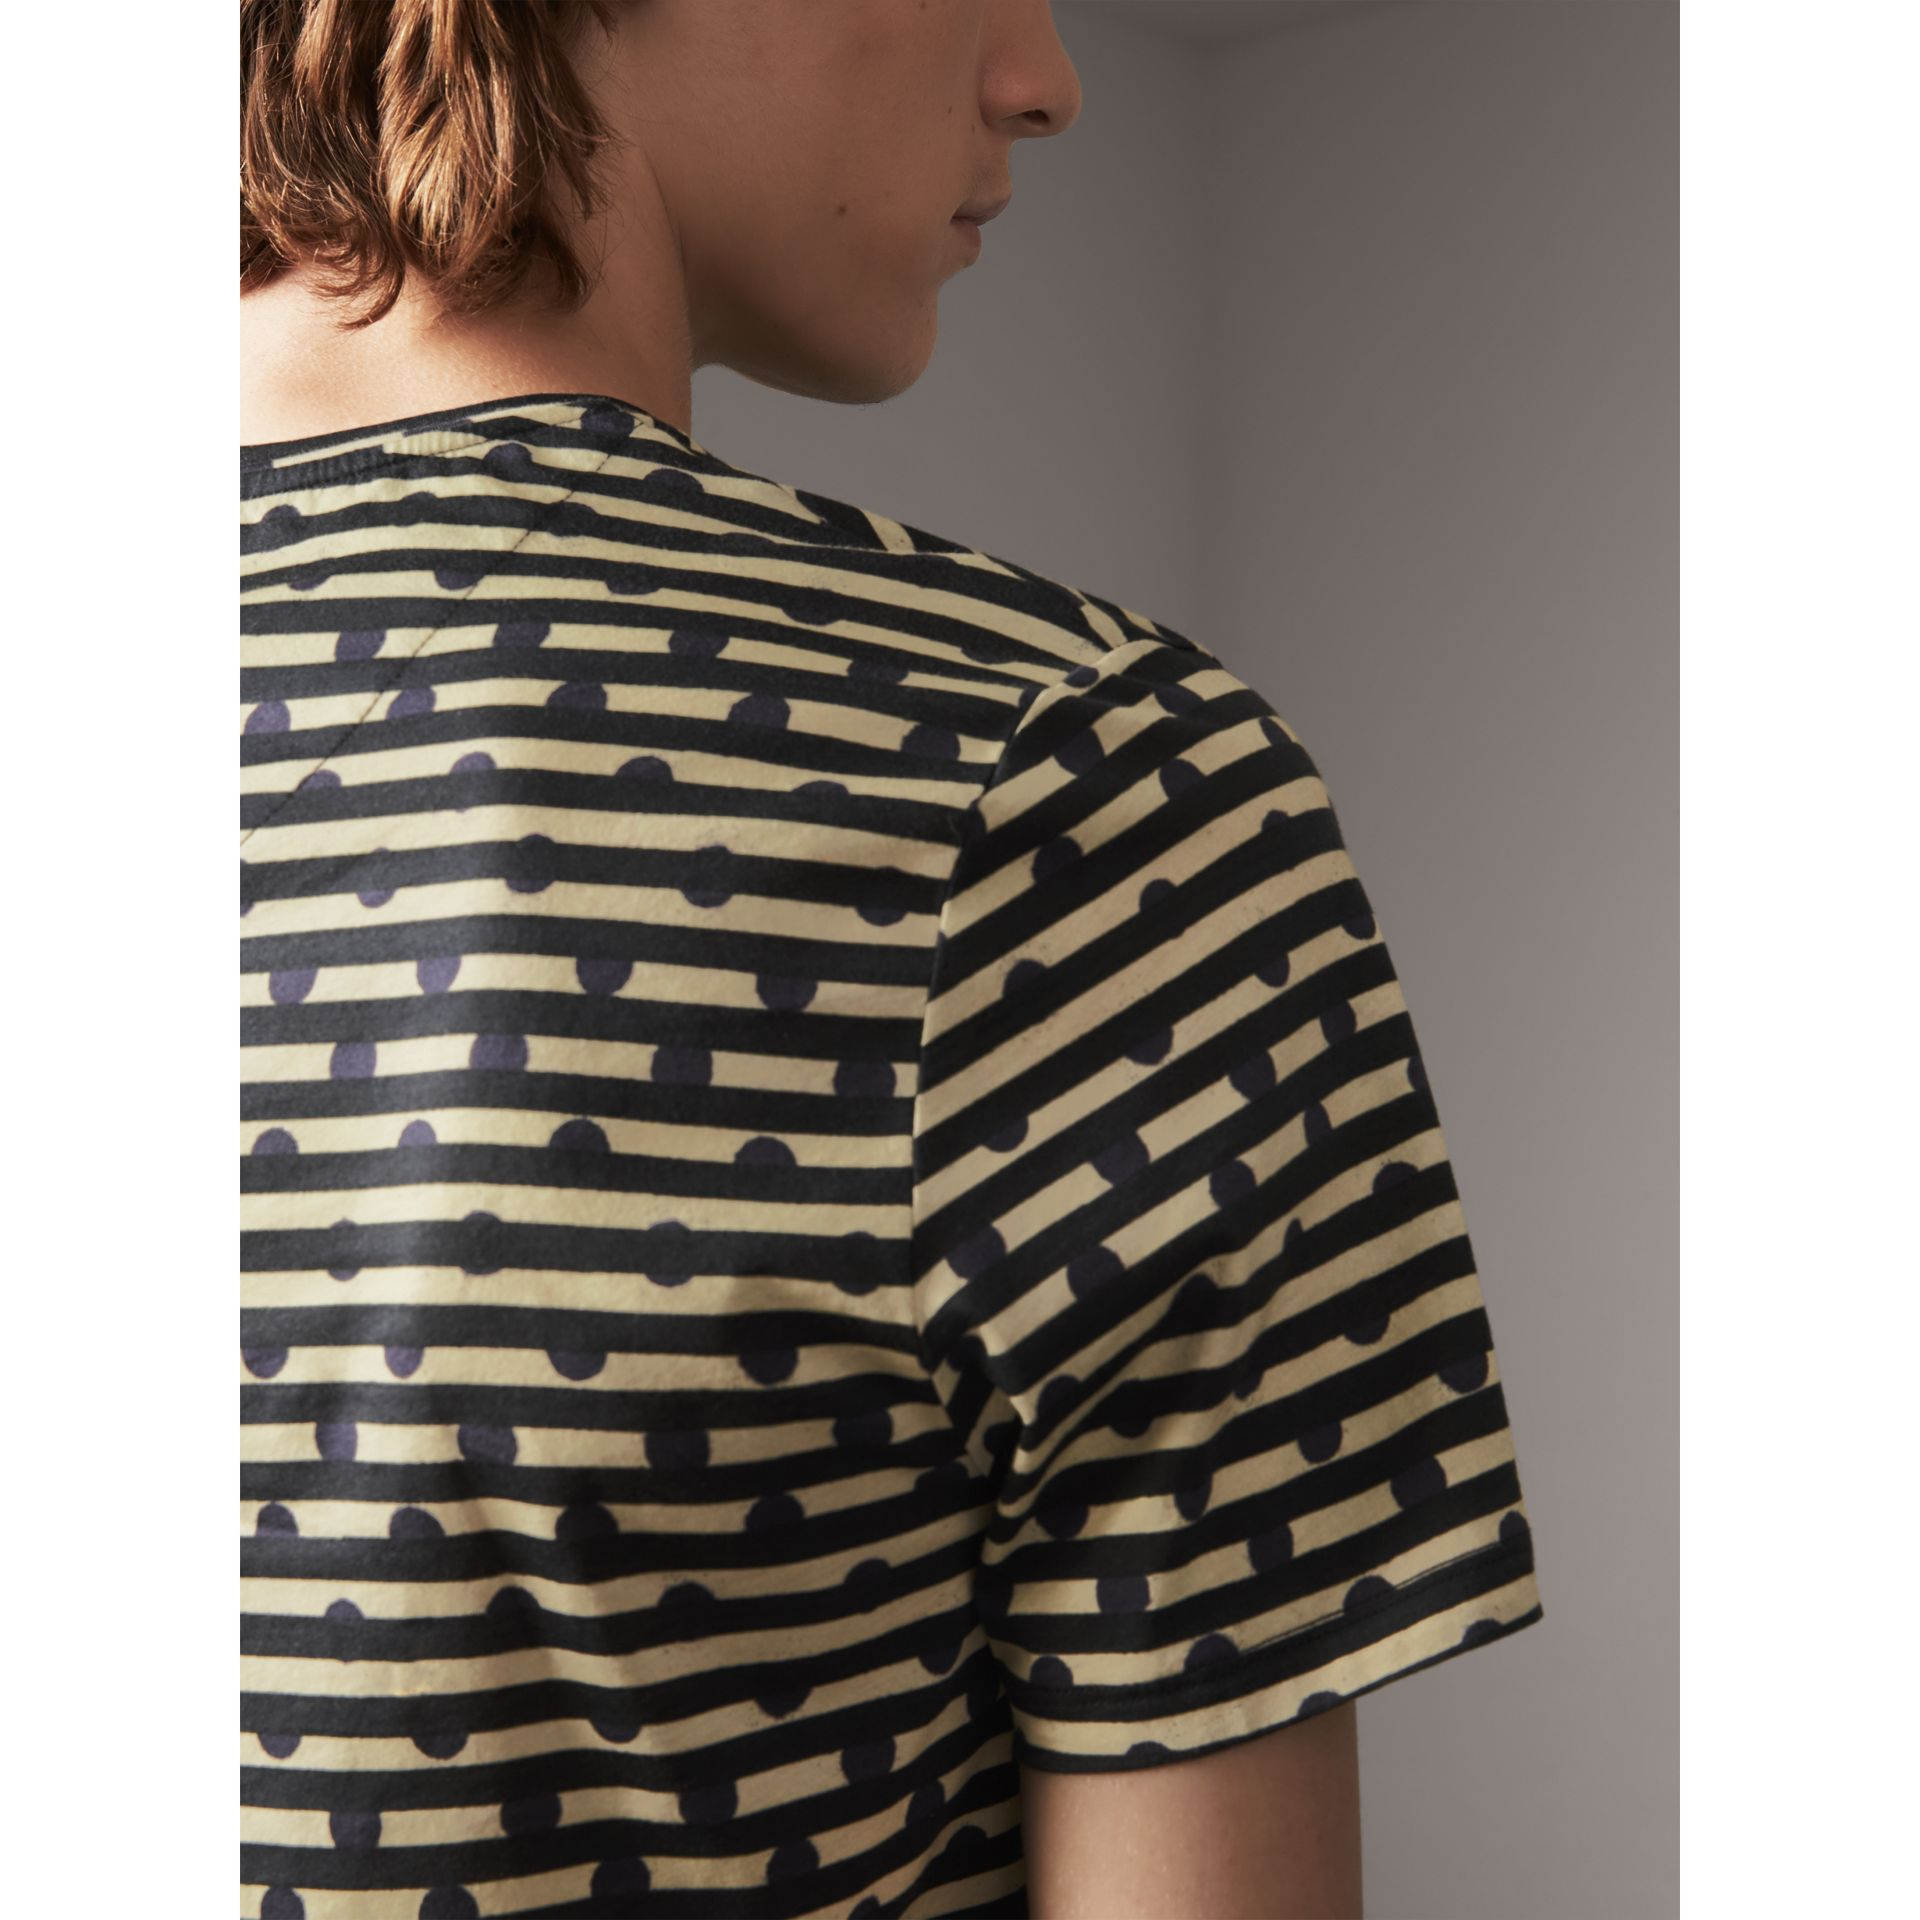 Spot and Stripe Print Cotton T-shirt in Navy - Men | Burberry - gallery image 1